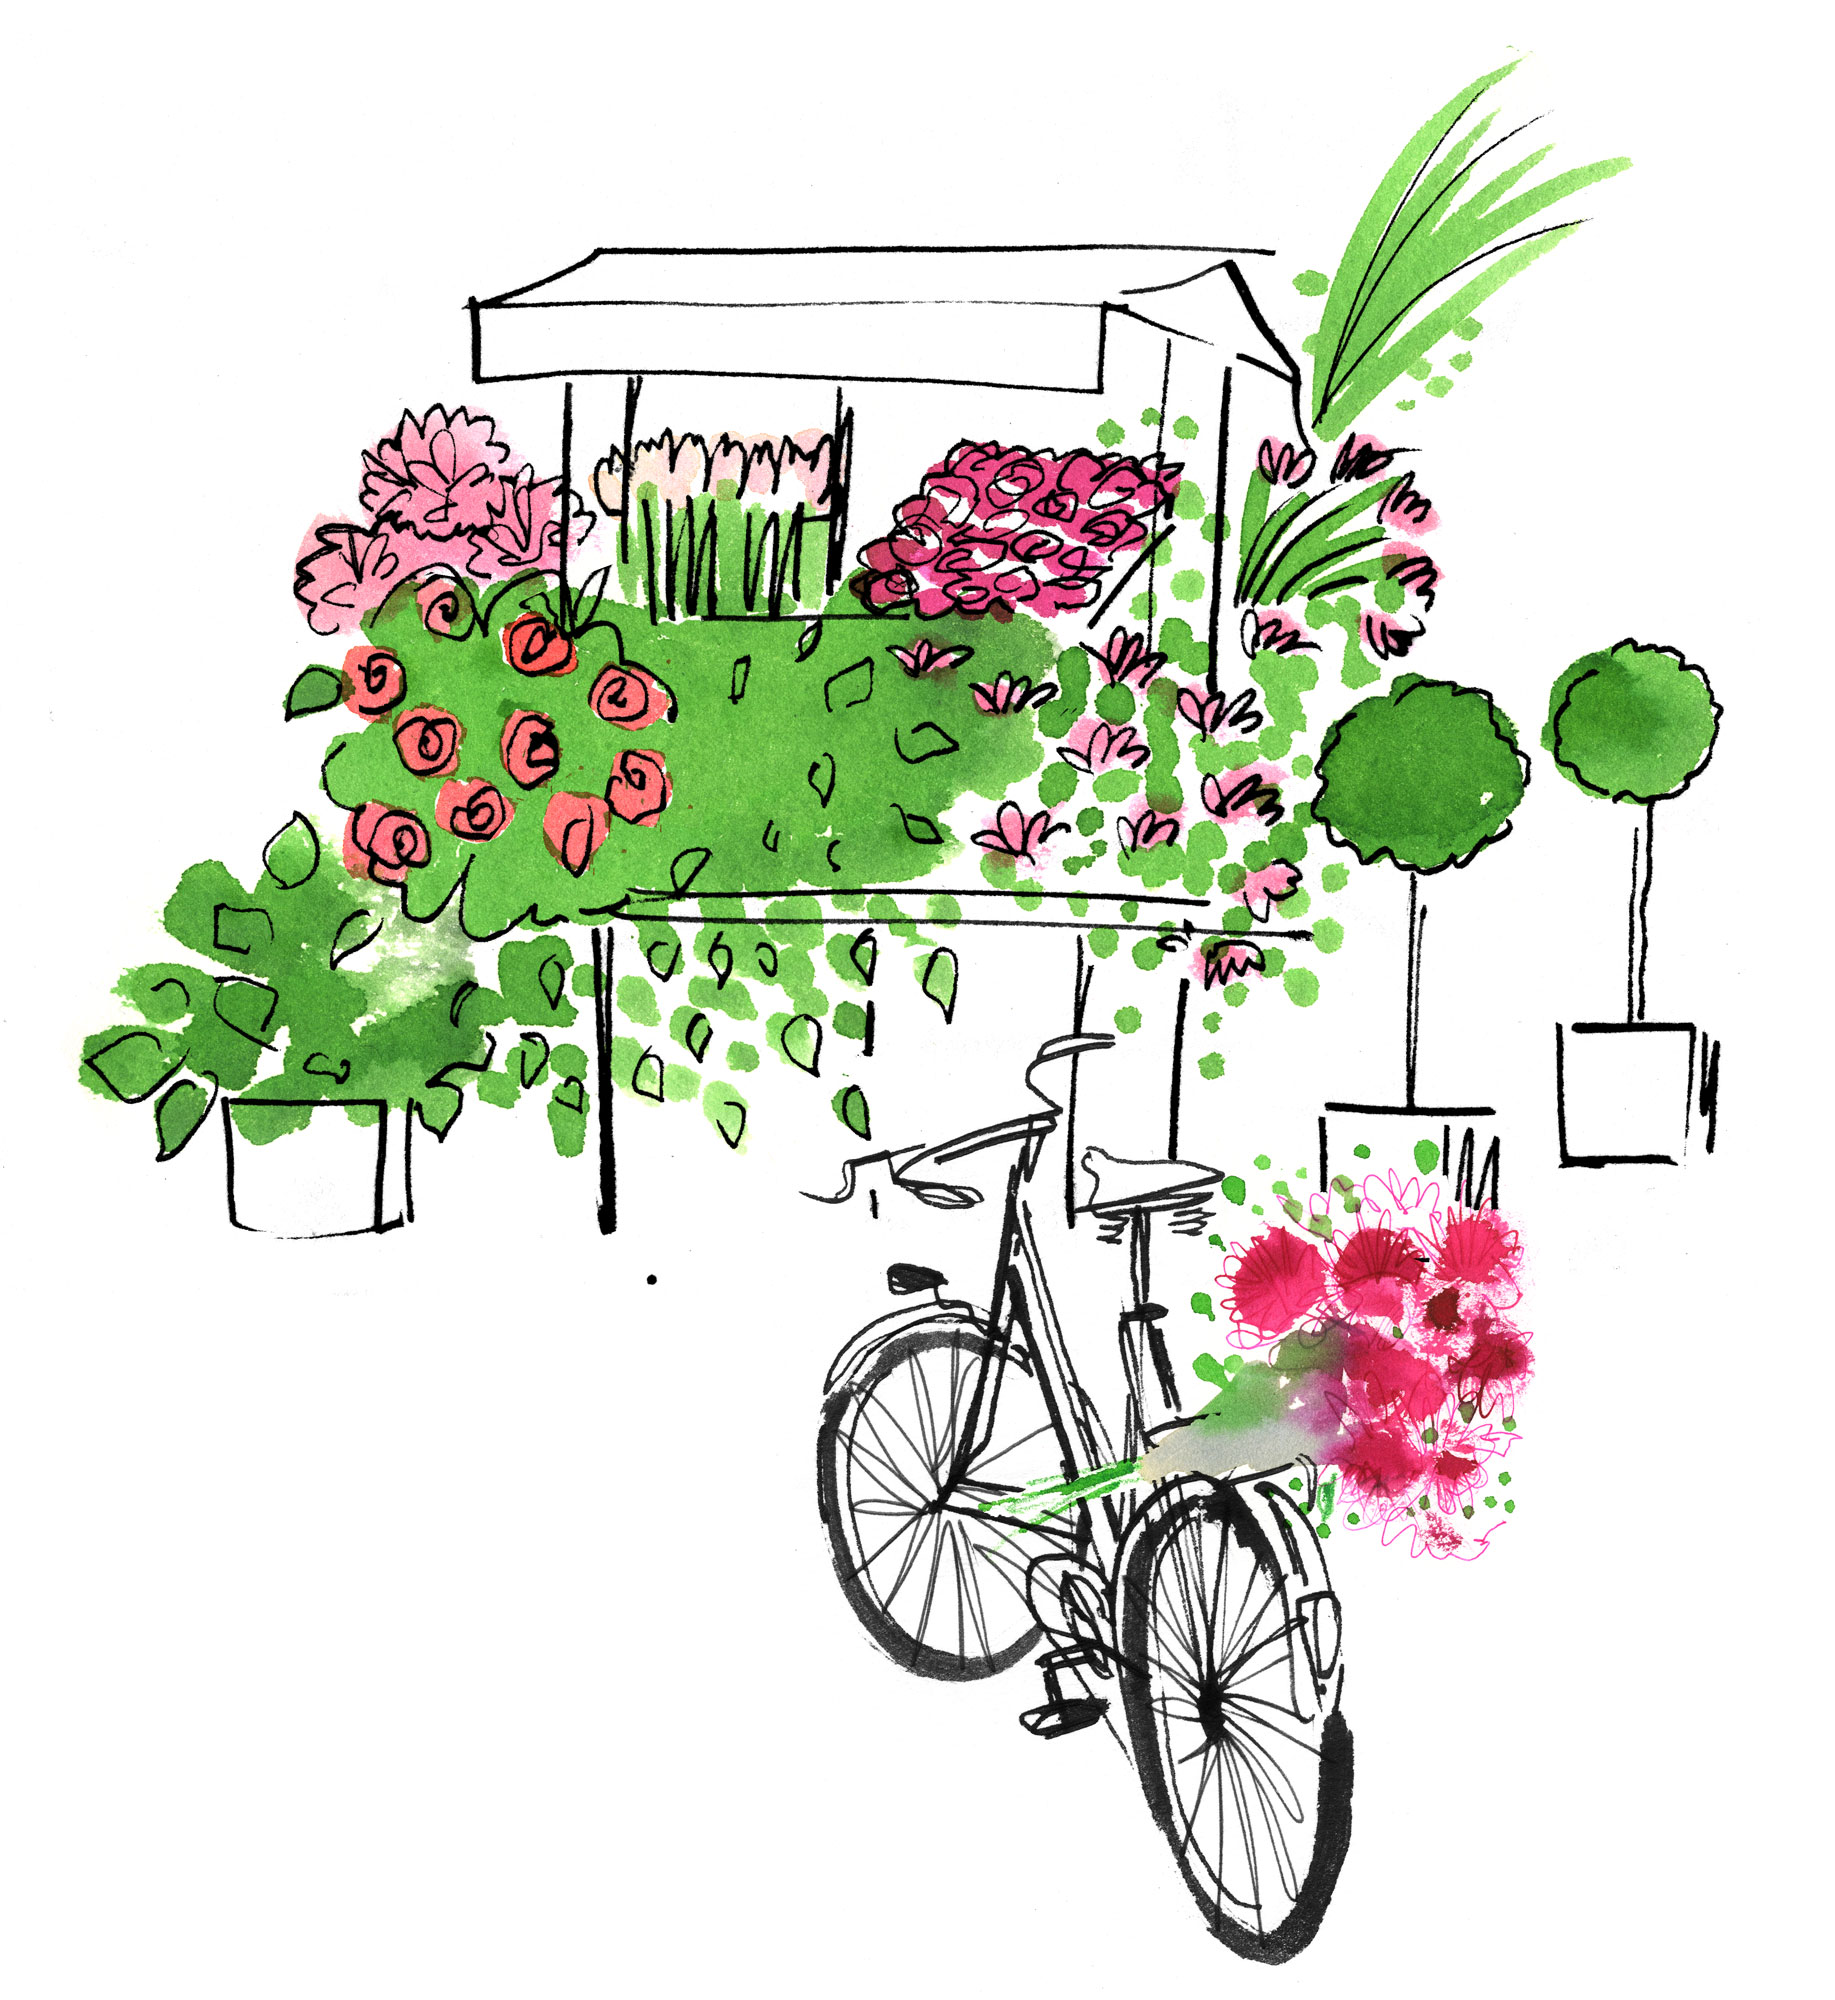 Lovisa-Burfitt-illustration-Green-kiosk-velo